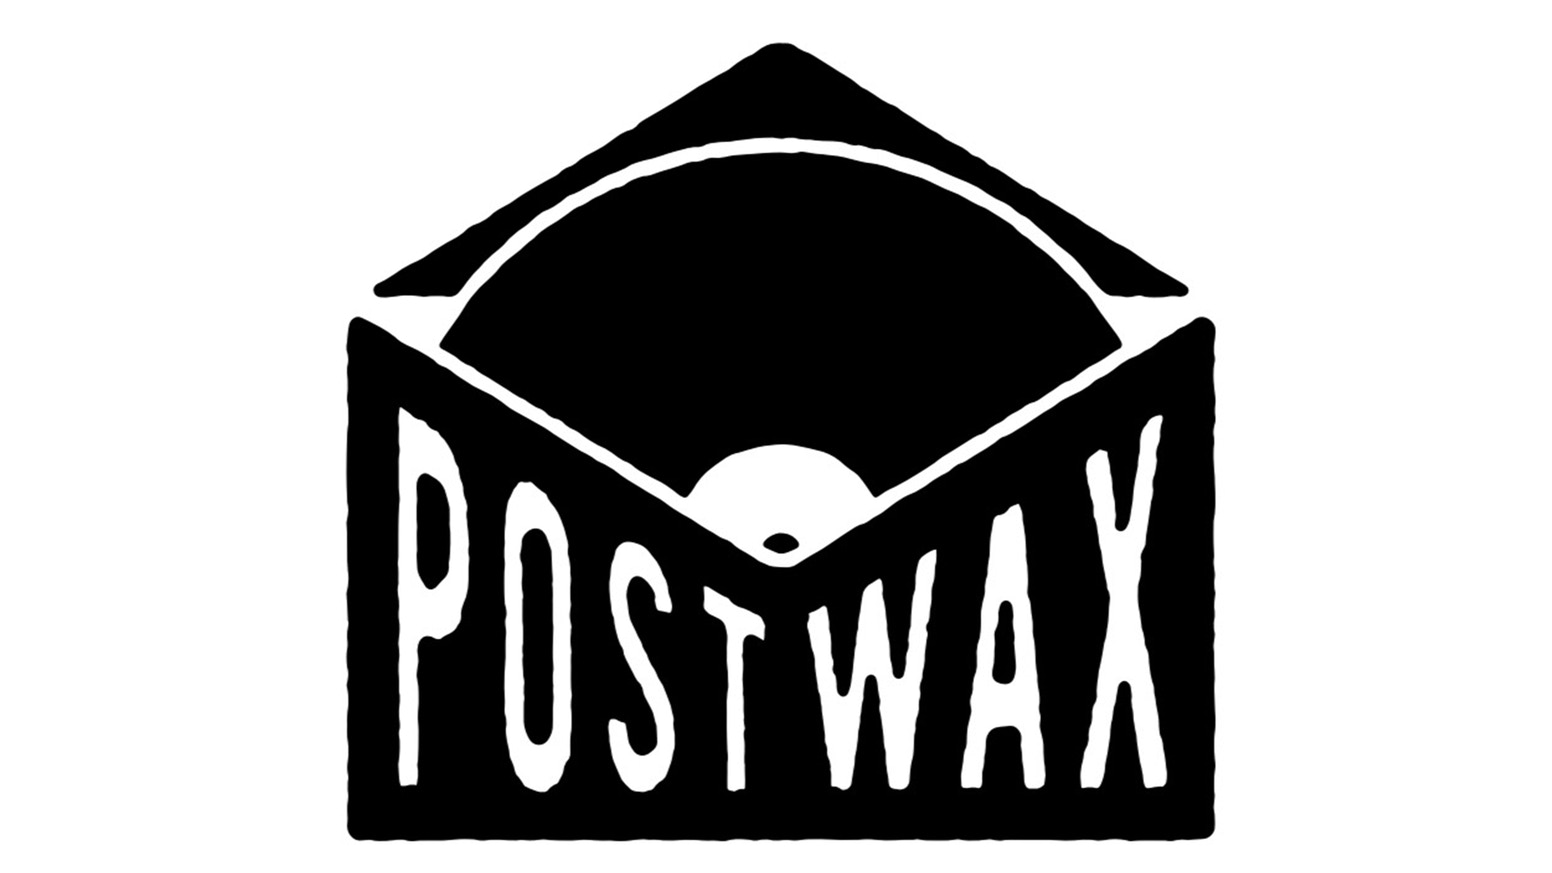 PostWax is a curated series of limited edition records from some of the best stoner metal, doom and heavy psych bands on the planet.